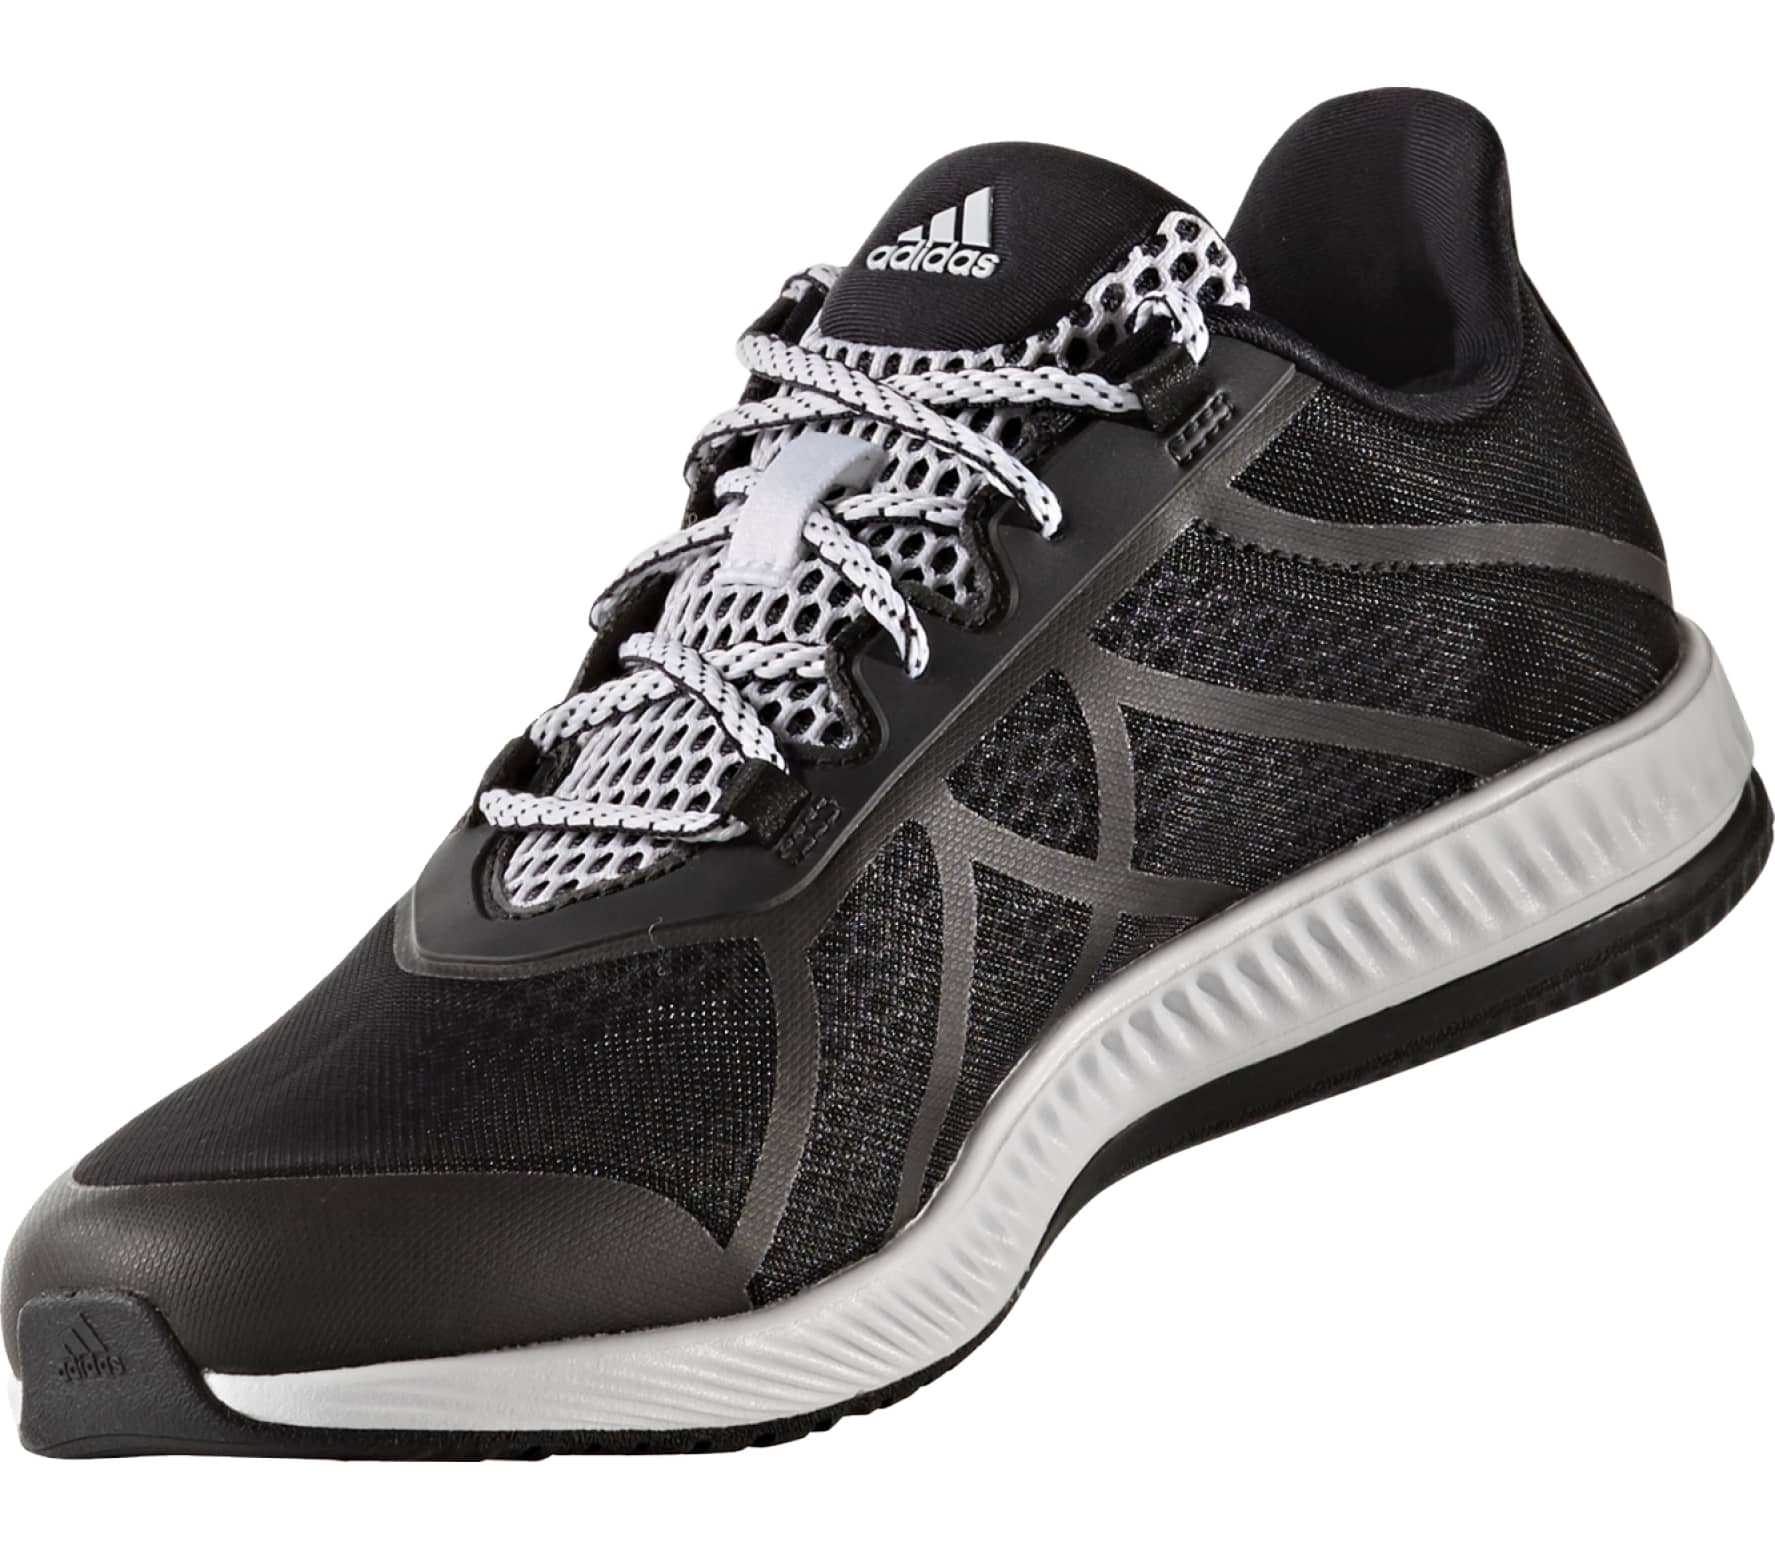 save off f189e b3d5d Adidas - Gymbreaker Bounce B women s training shoes (black white)